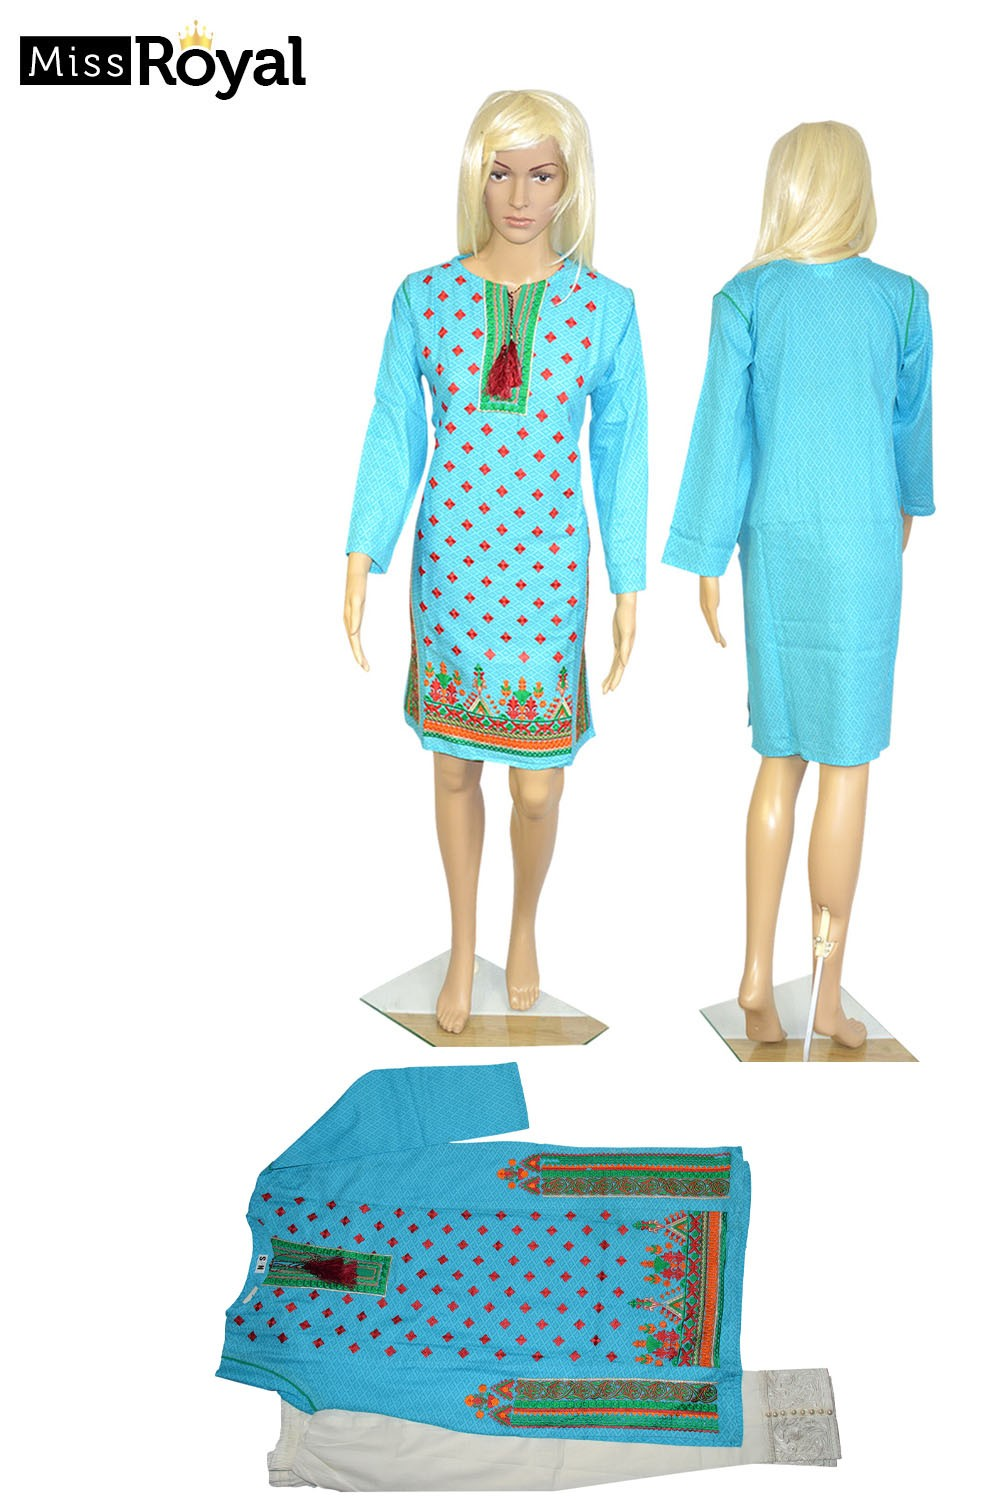 Quality Dress MissRoyal Asian stitched (Sky/White) dress in 2 pieces - Size Small - 1